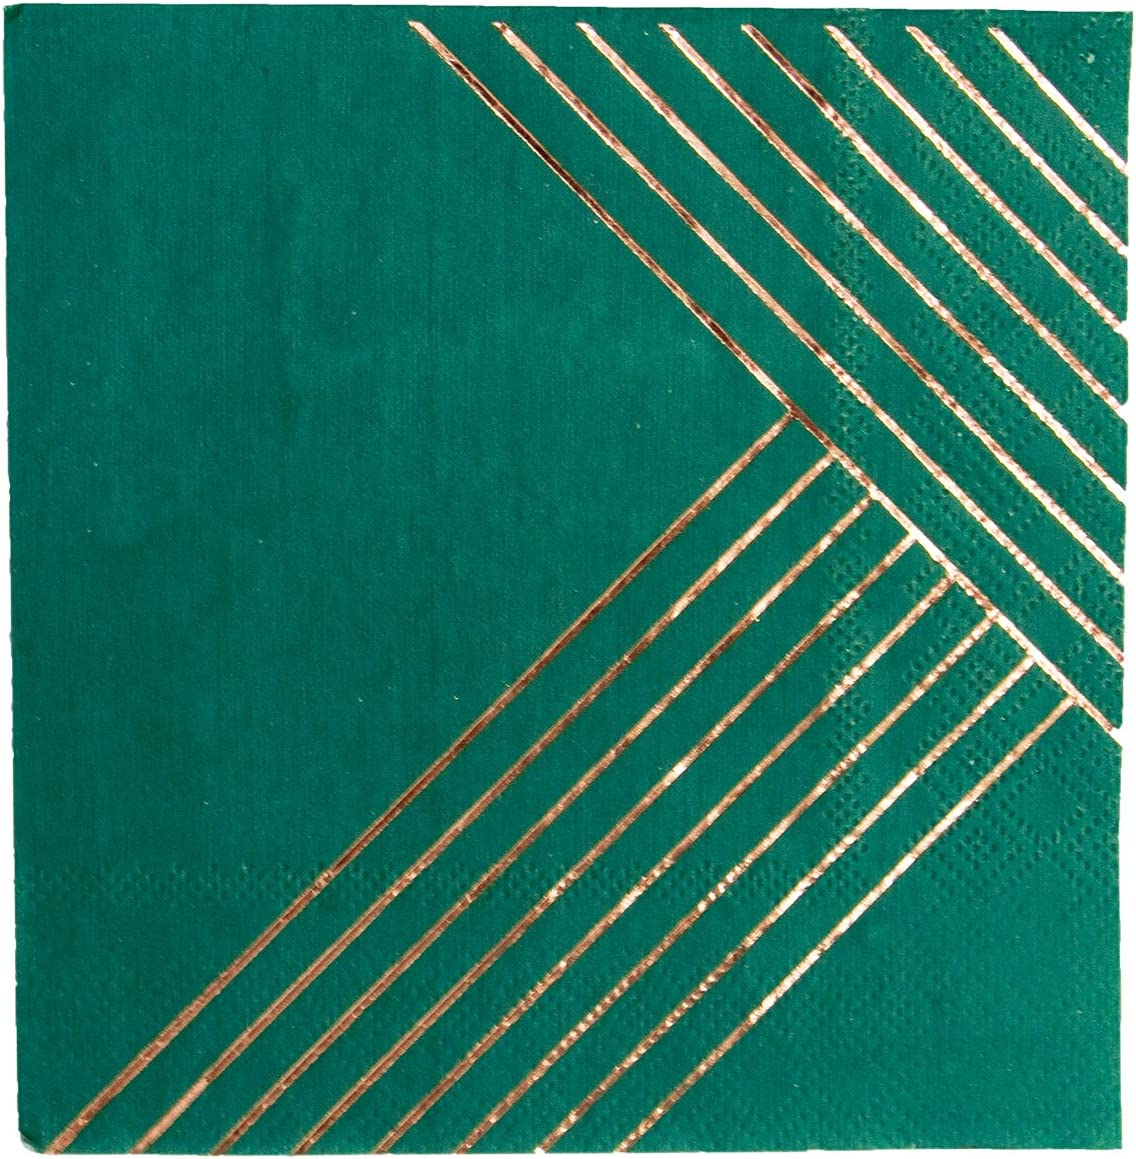 Harlow & Grey Manhattan Dark Green with Rose Gold Foil Striped Cocktail Paper Napkins, Pack of 20 - Birthday, Wedding, Showers Party Napkins